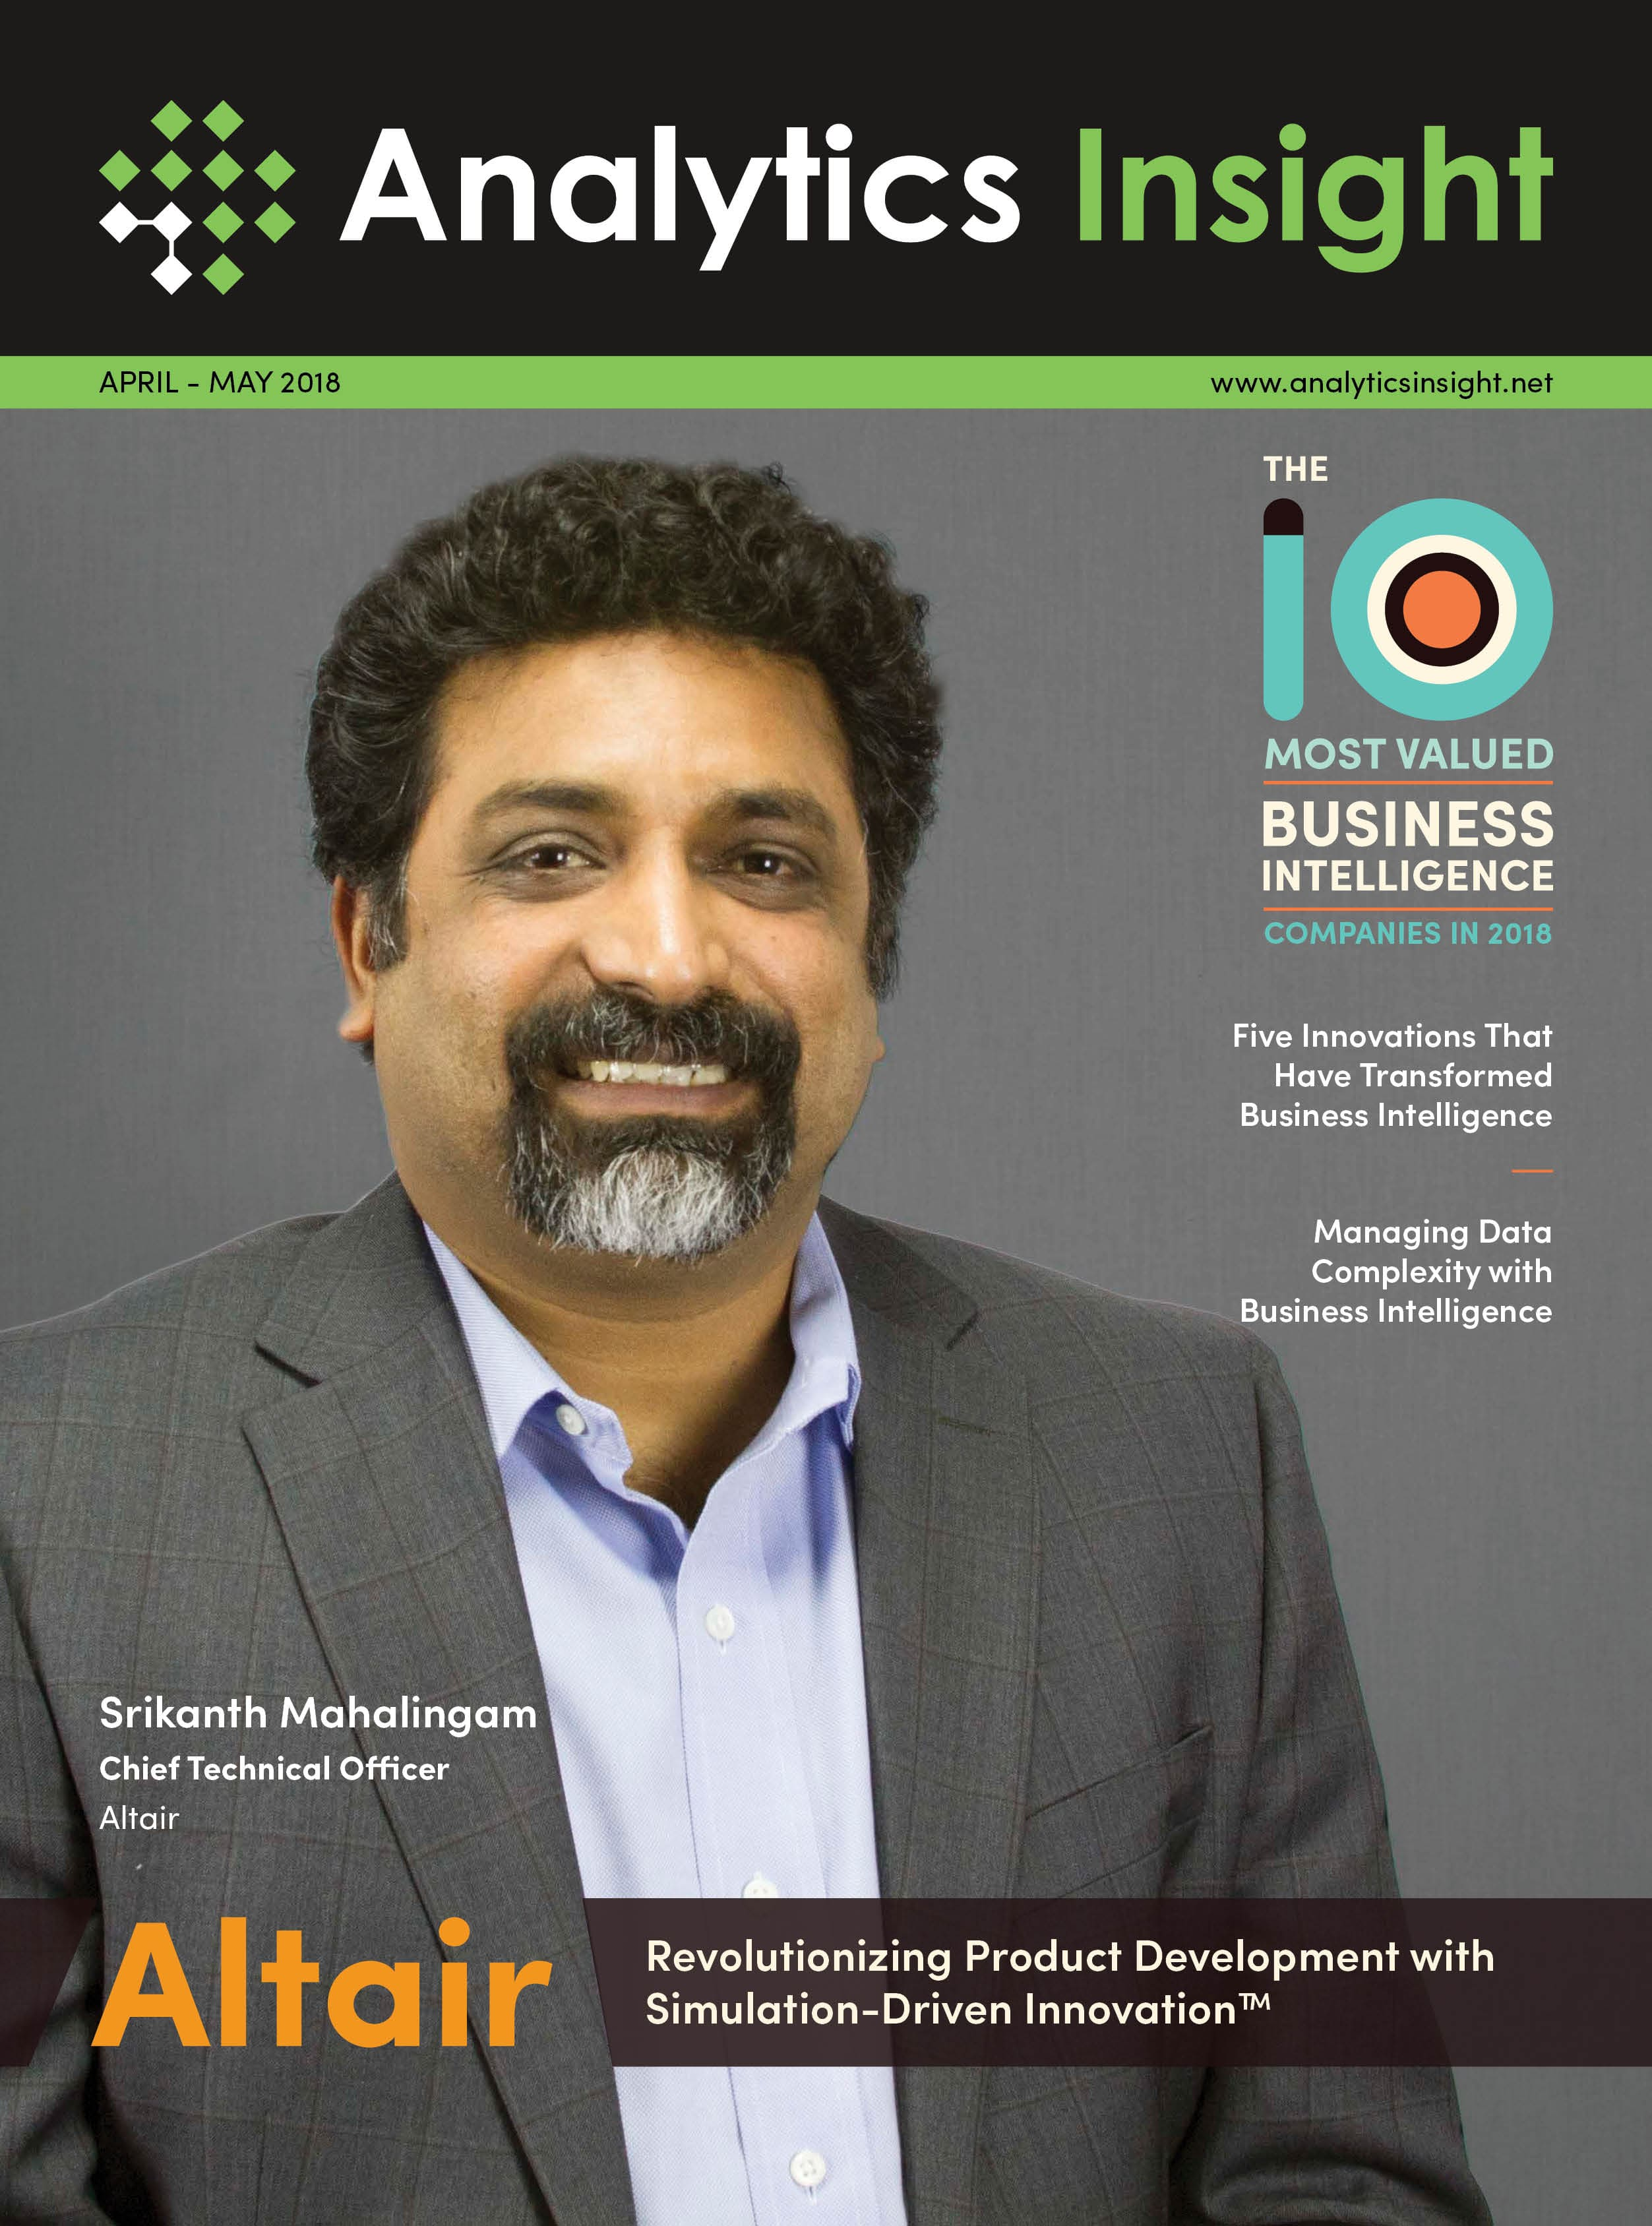 Analytics Insight Announces 'The 10 Most Valuable Business